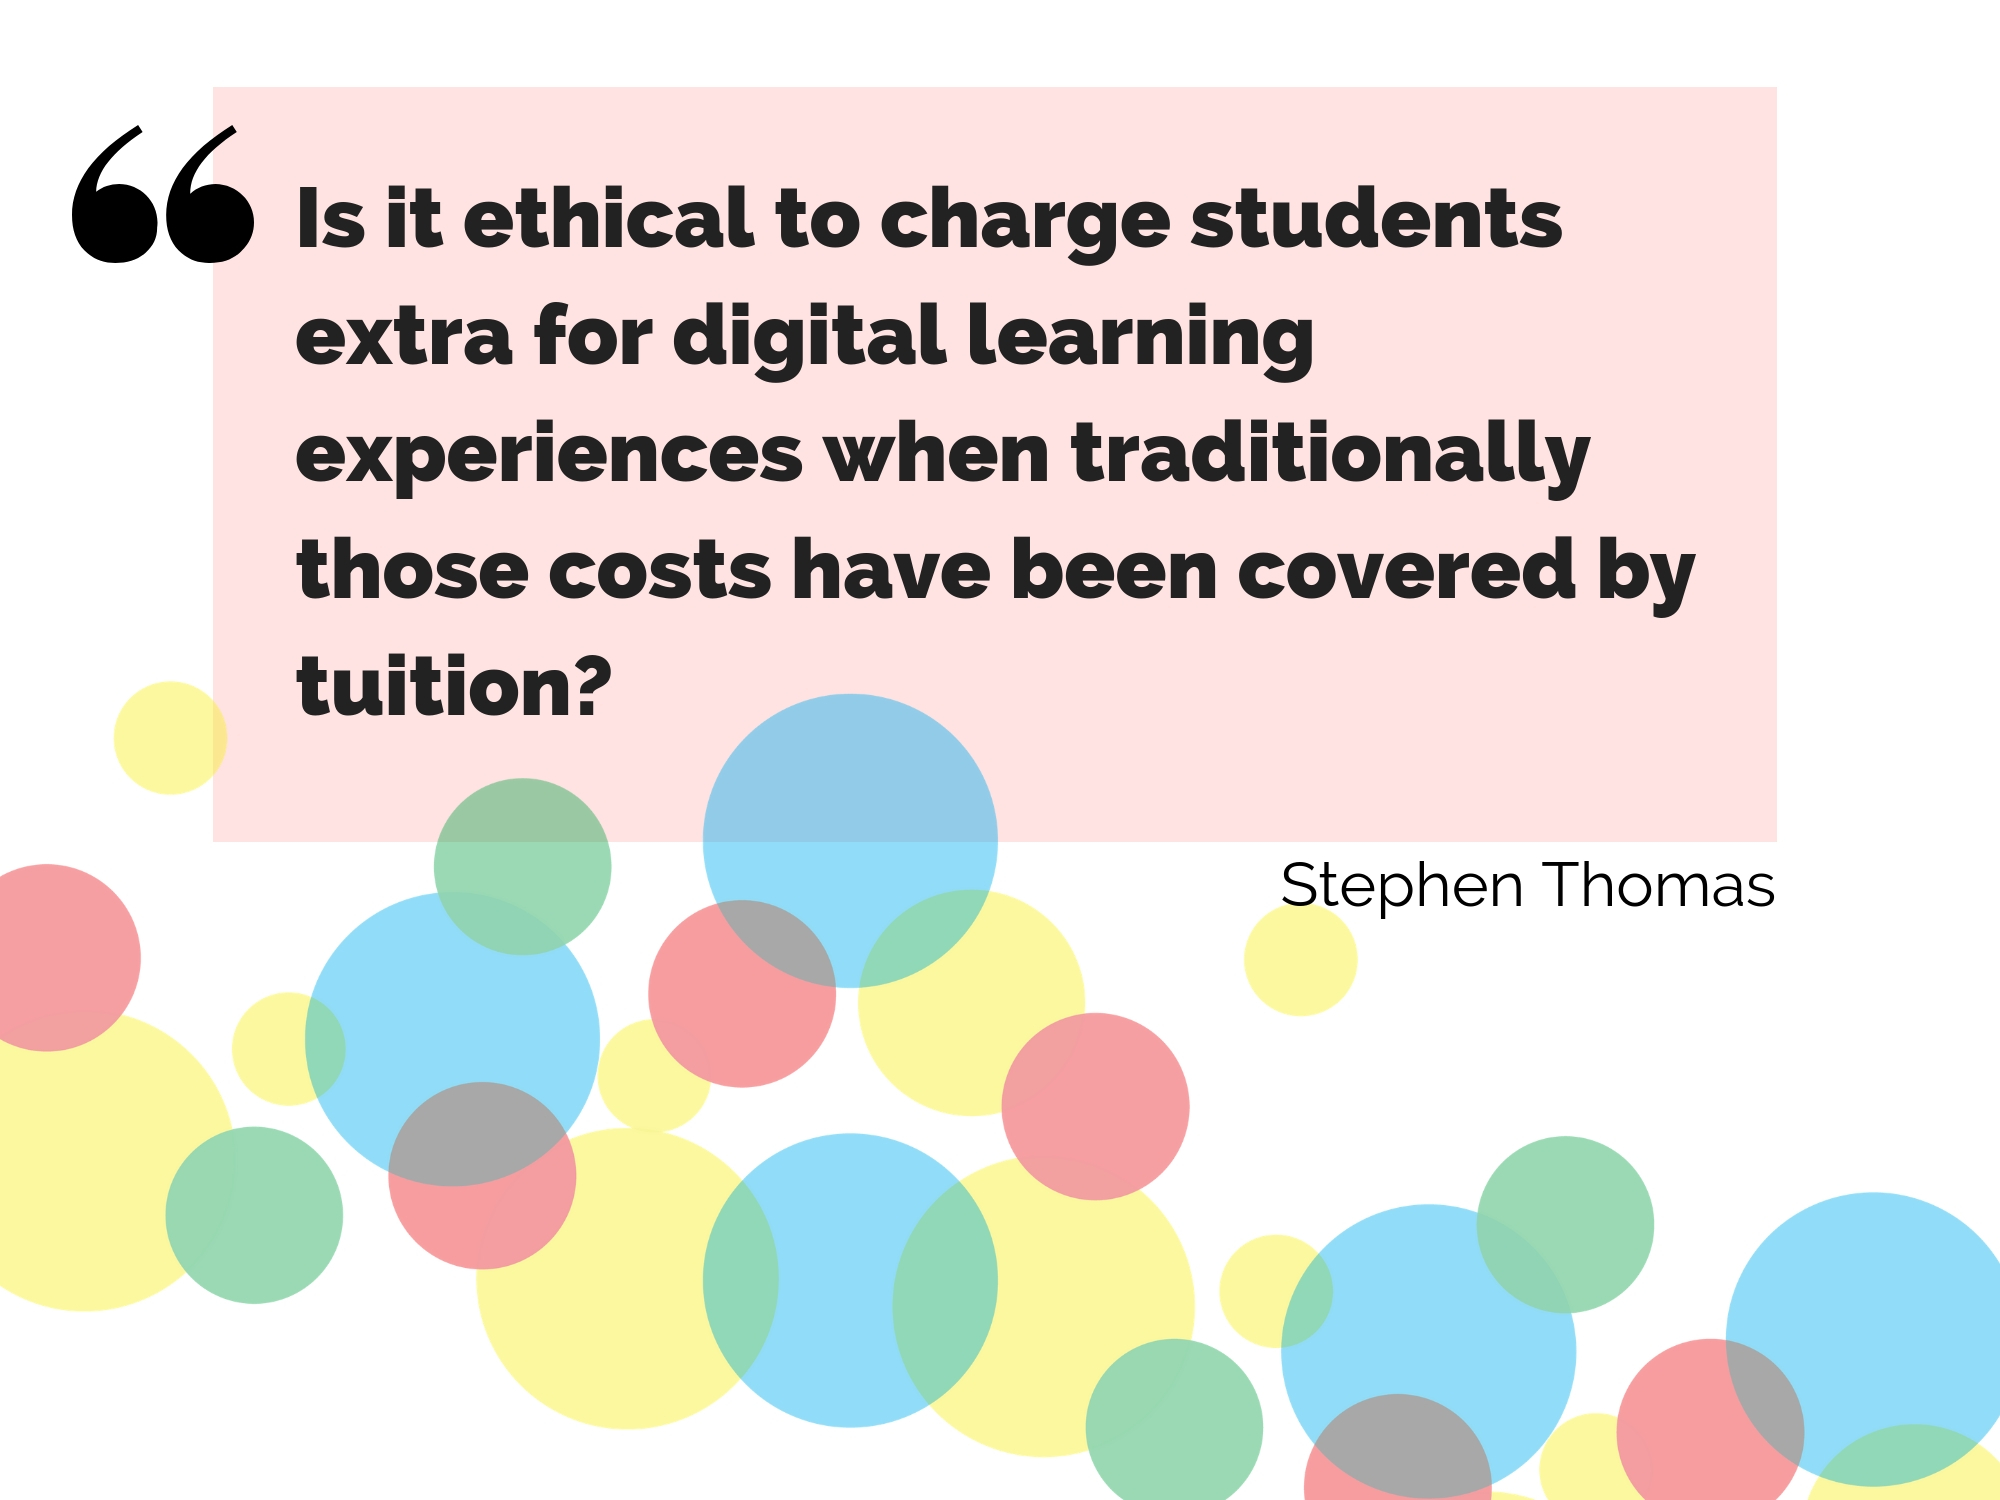 Is it ethical to charge students extra for digital learning experiences when traditionally those costs have been covered by tuition? A question posed by Stephen Thomas, Hub Fellow